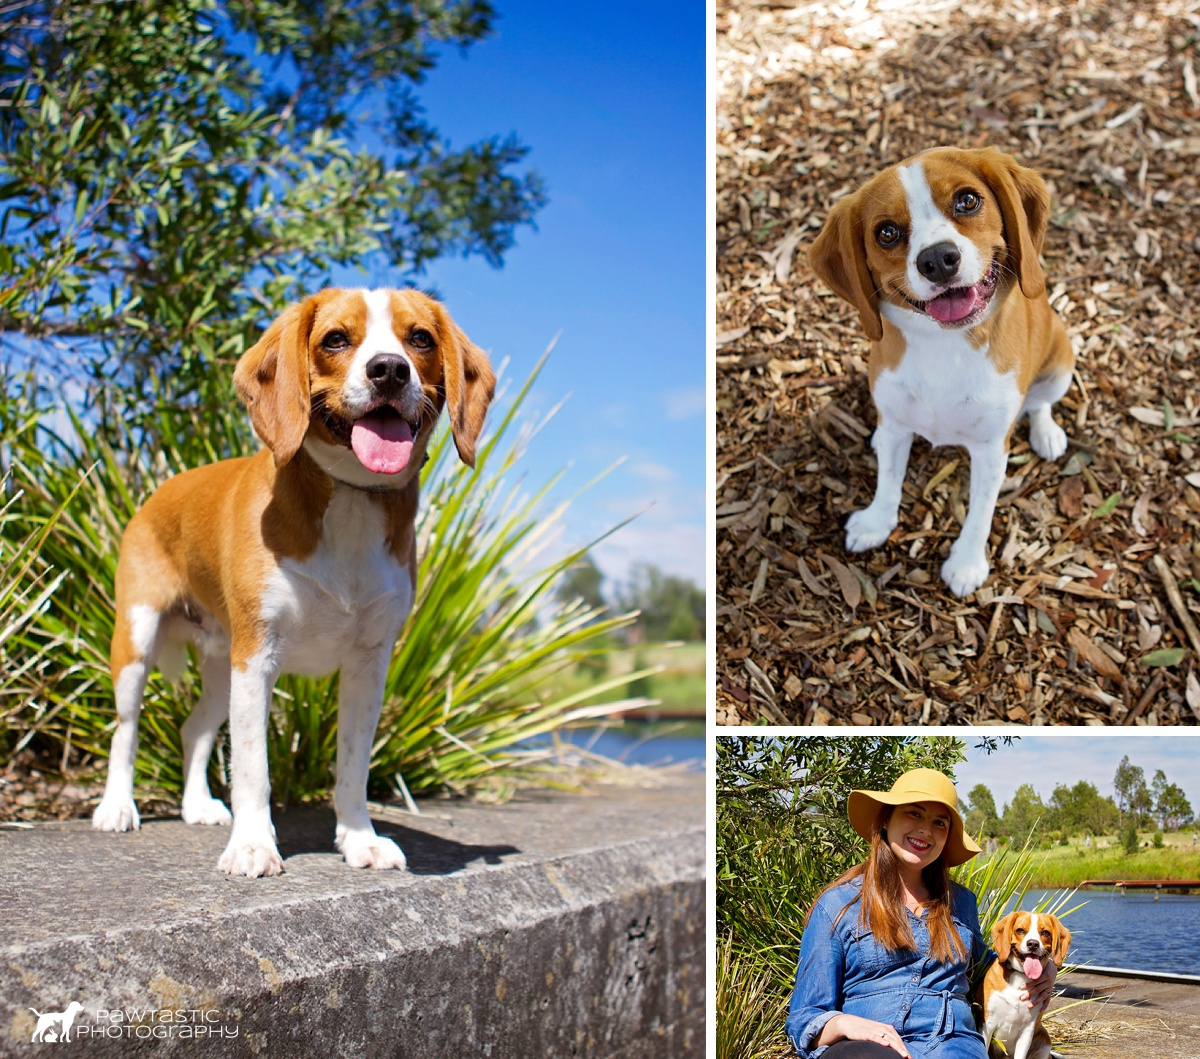 Beaglier, Spartacus, poses with a smile amid the various greenery and tree bark at Sydney Park. Next to him is his owner as they get their photos taken by professional pet photographer, Pawtastic Photography during their Dog Days of Summer session.